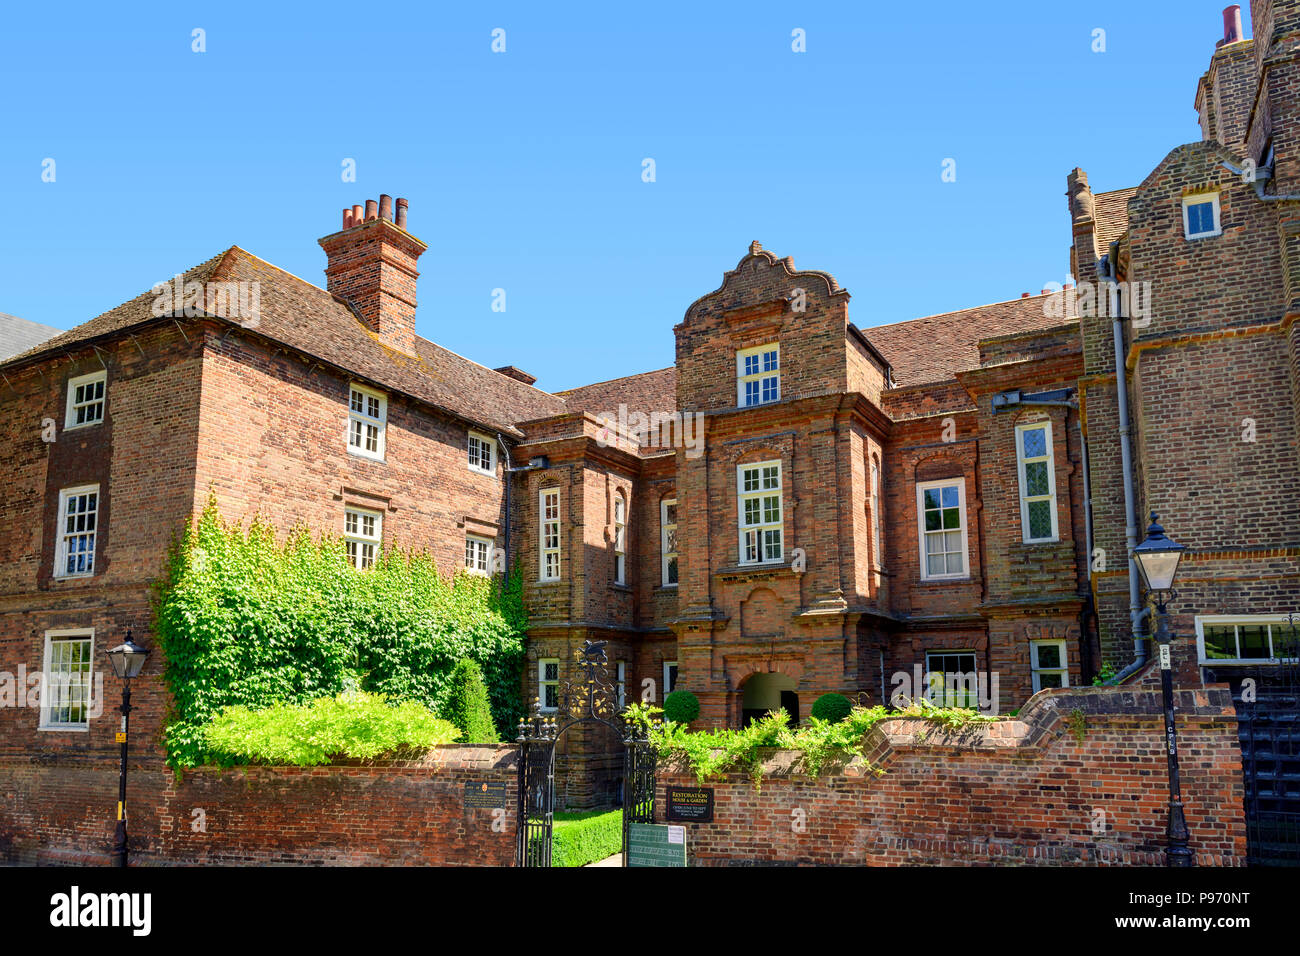 Restoration house Rochester, the inspiration of ' Satis house' in great expectations. - Stock Image